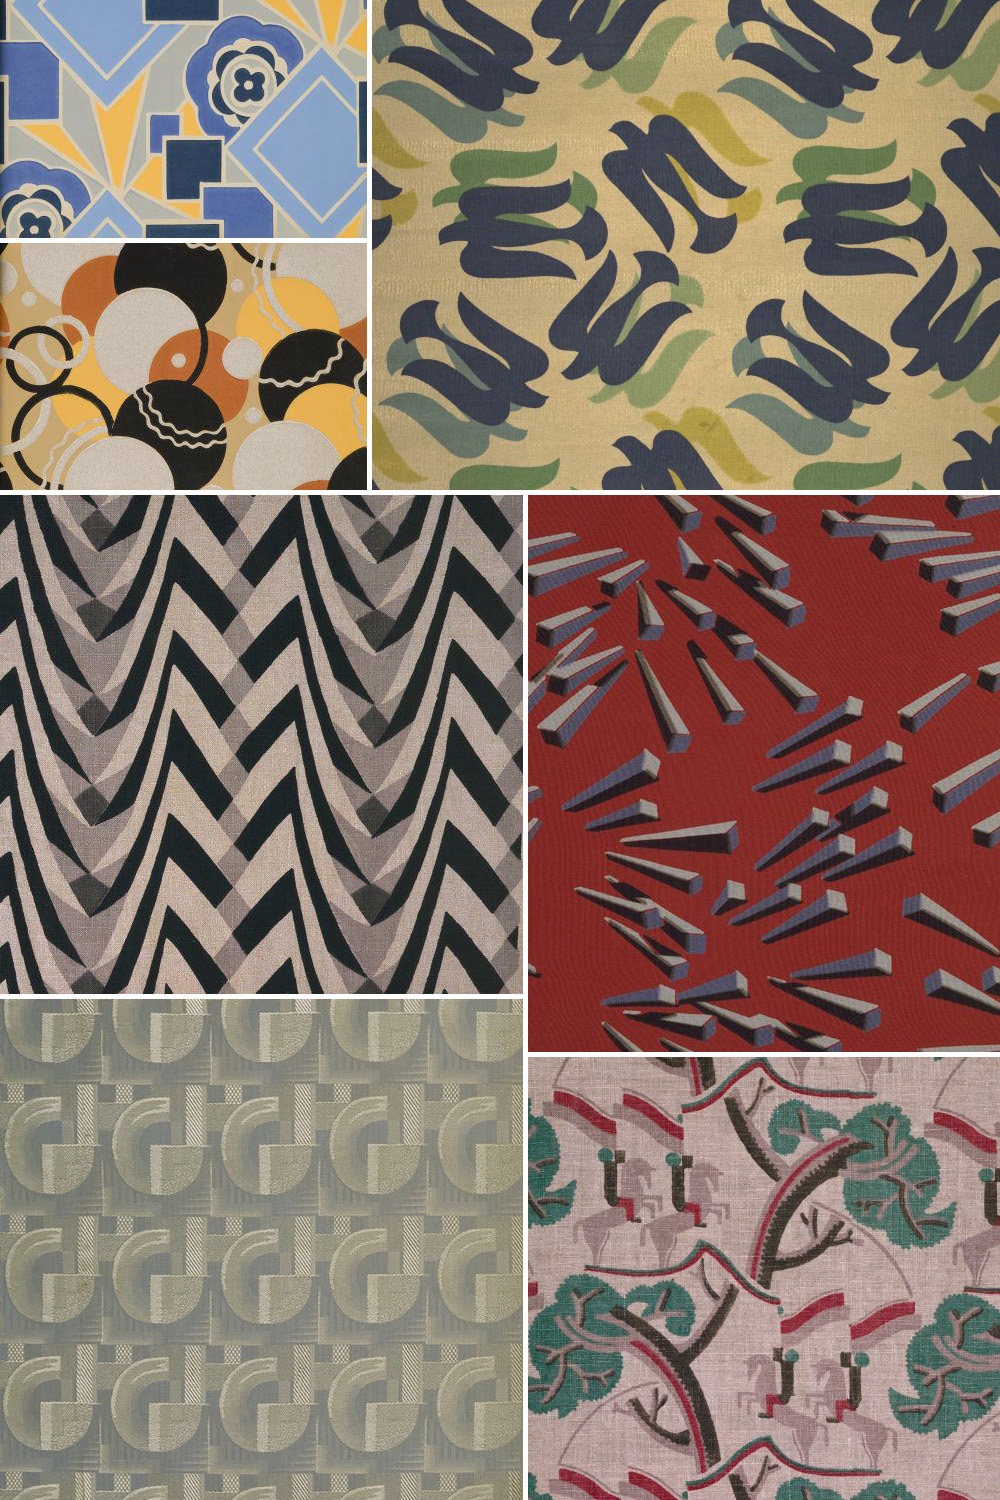 deco history surface textile fabric patterns pattern textiles patternobserver dorn marion designers designer po